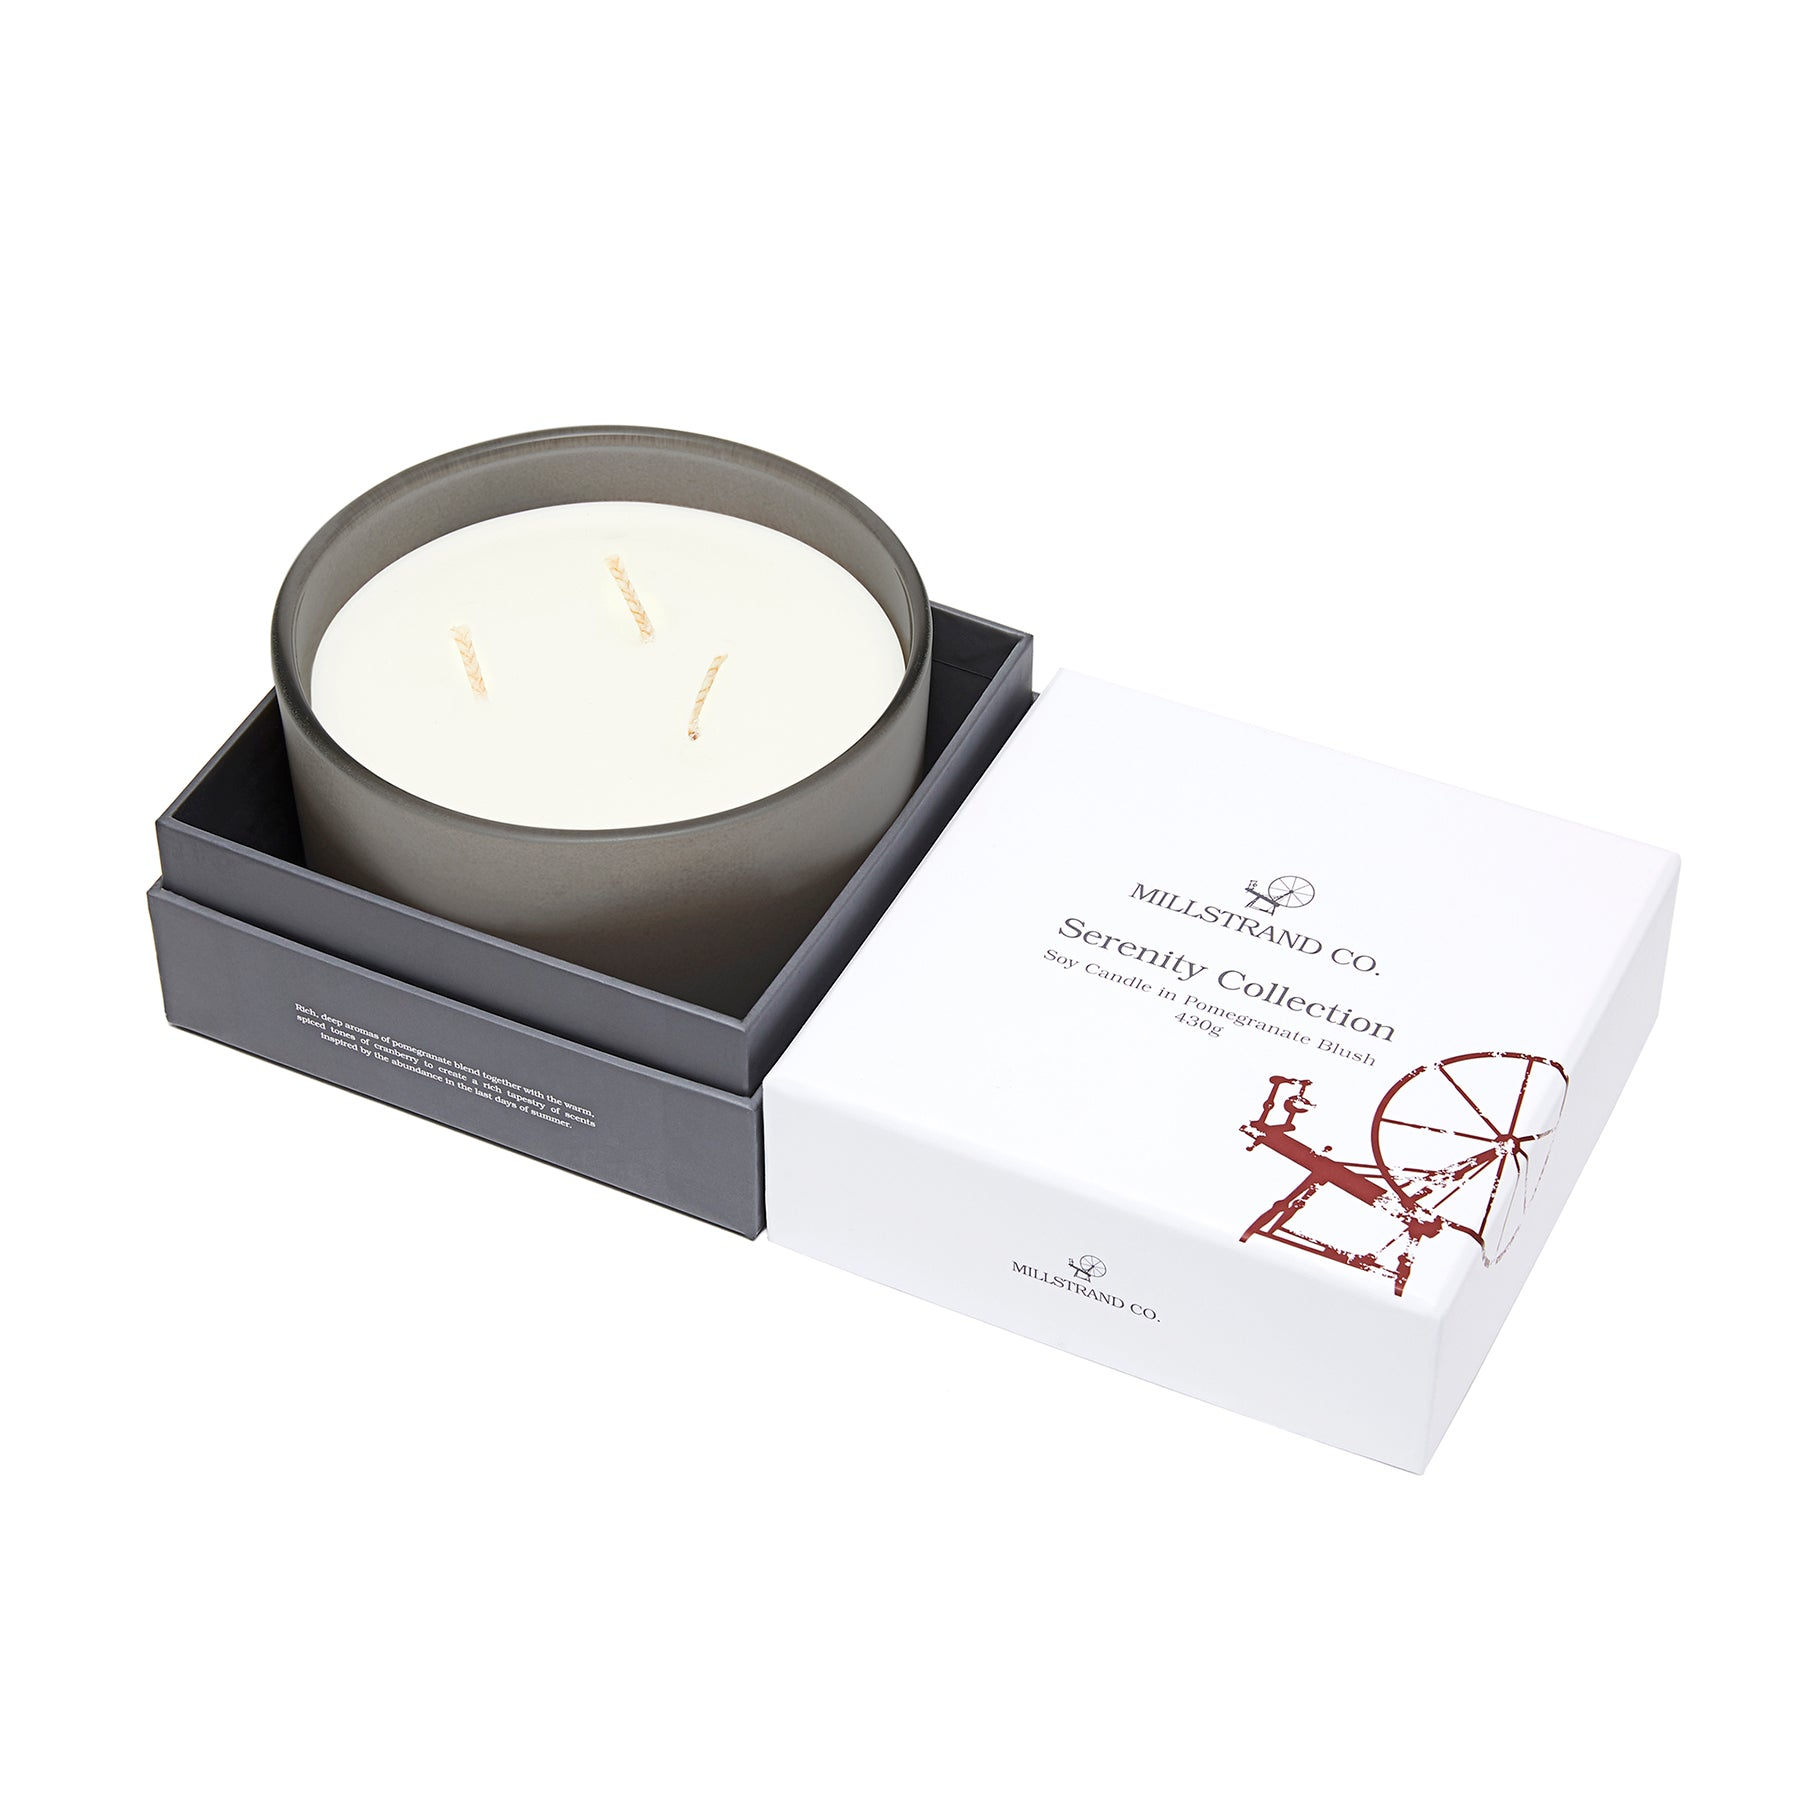 Millstrand Co. Serenity Collection - Soy Candle in Pomegranate Blush 430g